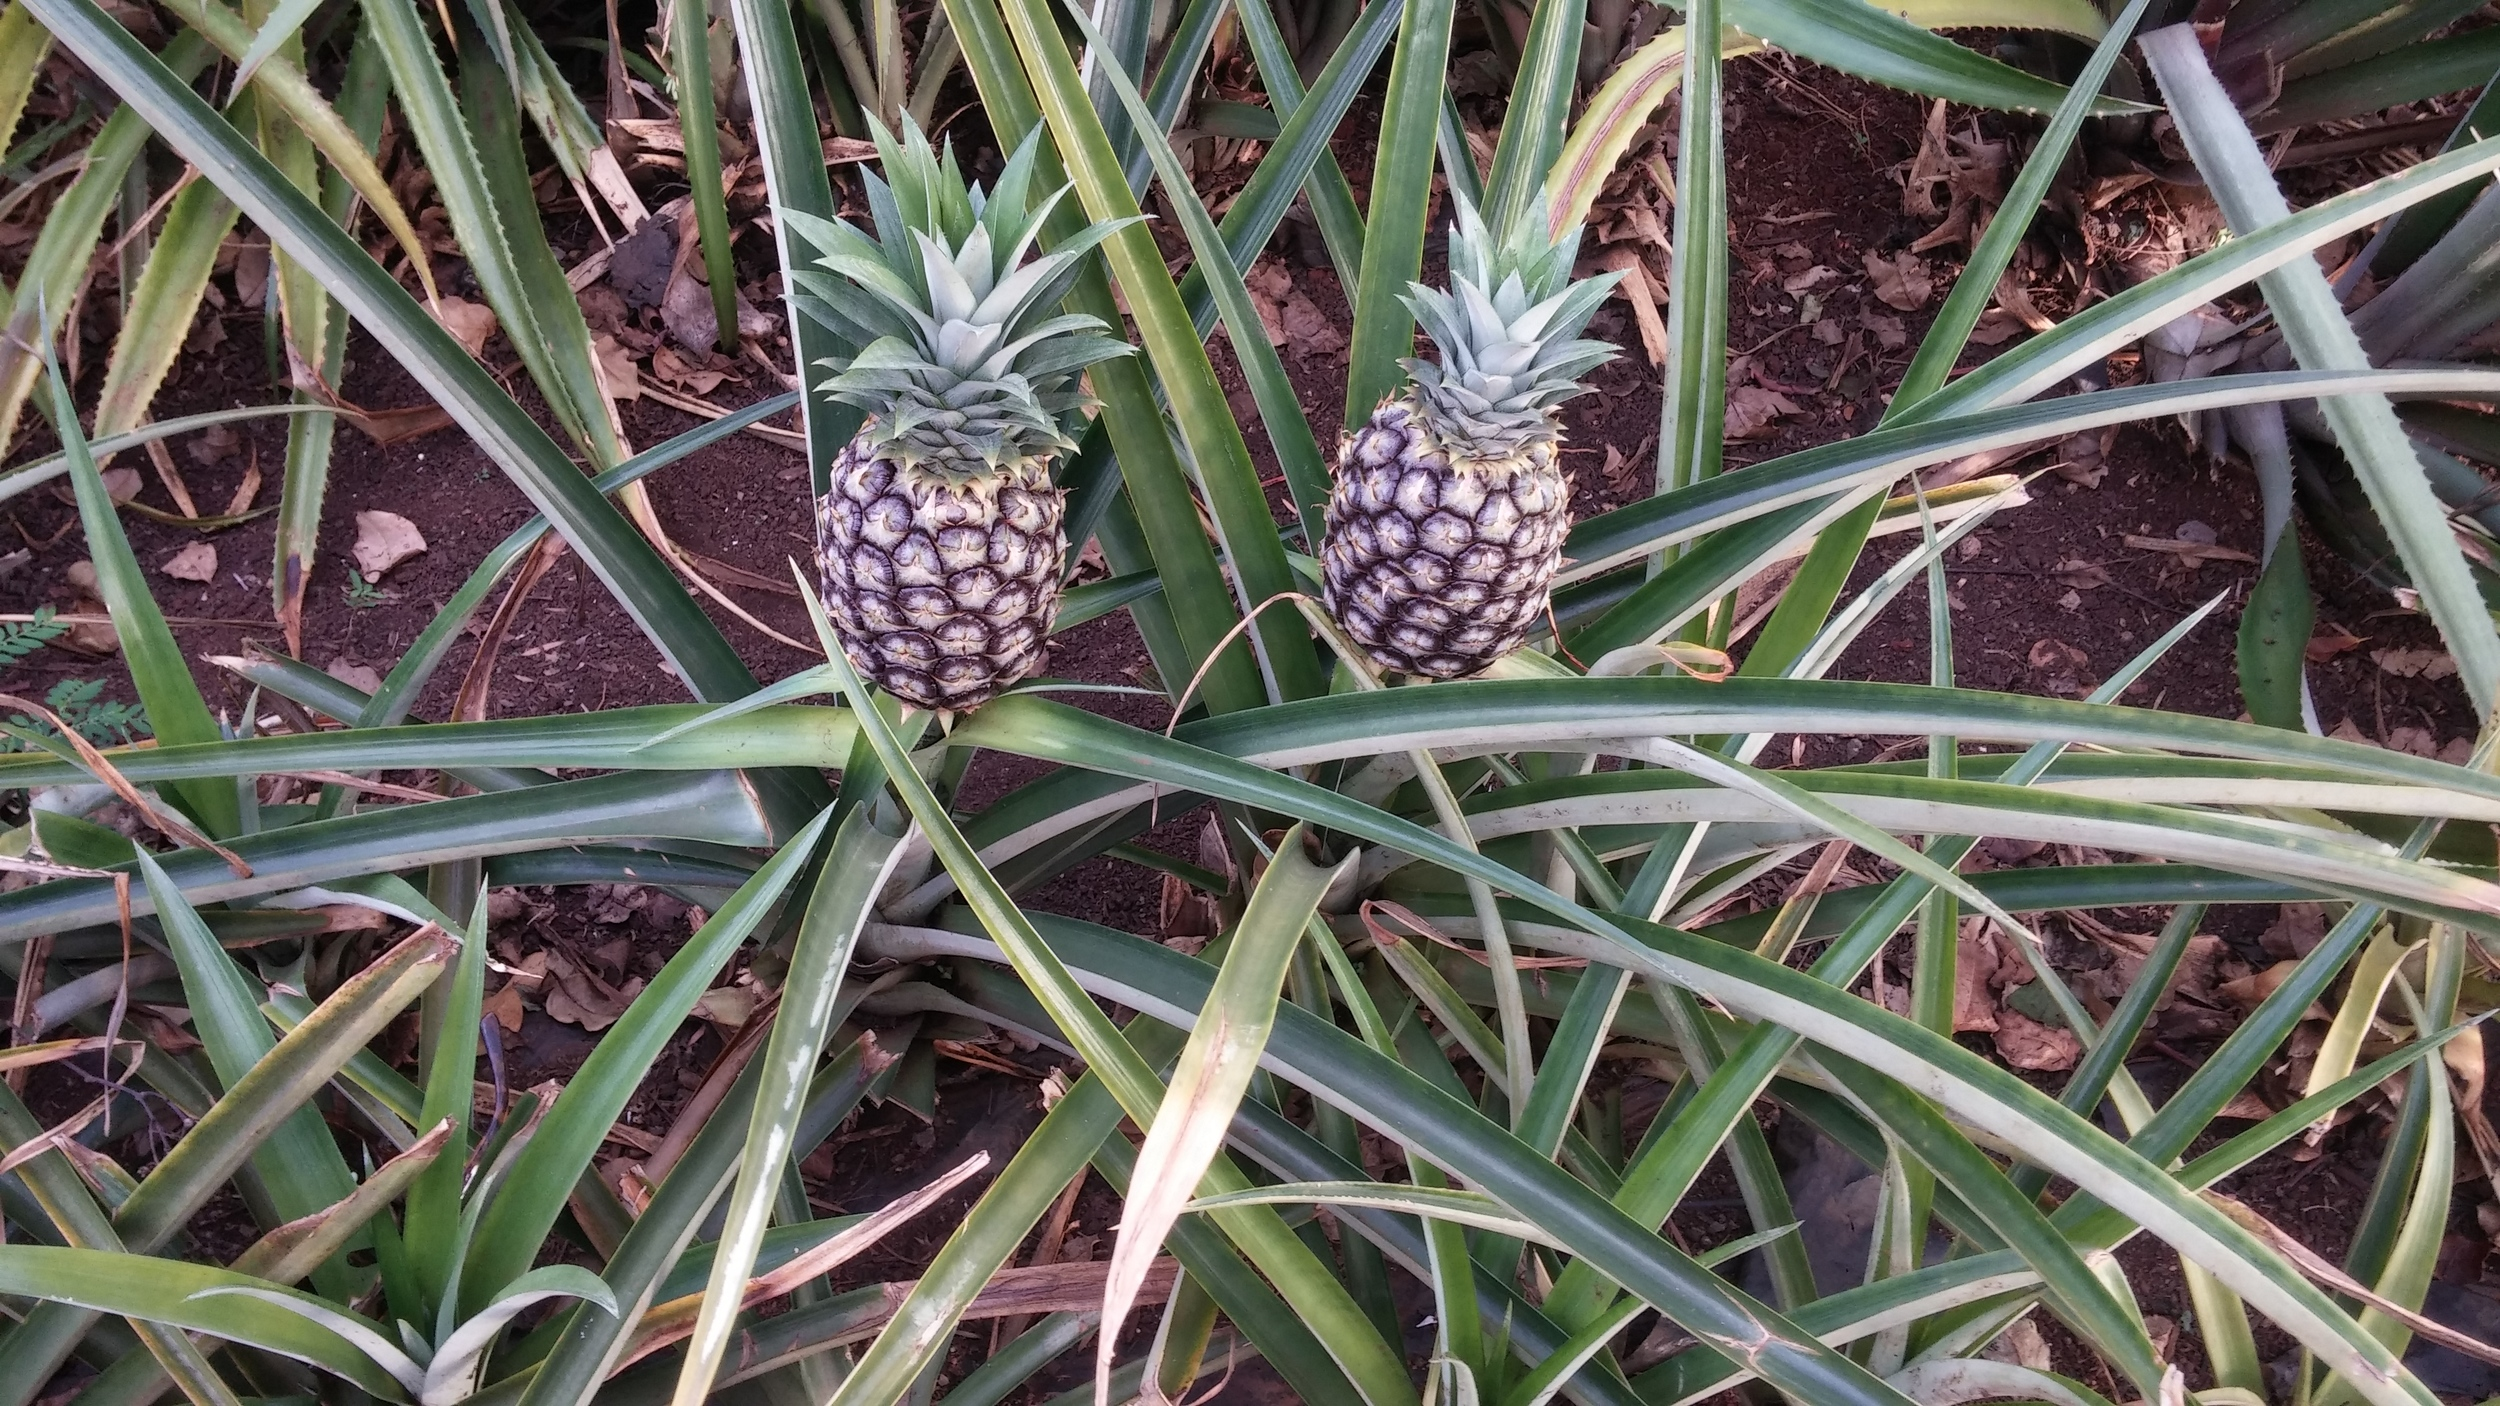 A real pineapple. They grow in a bush! Learn something new every day. Getting closer to our food.